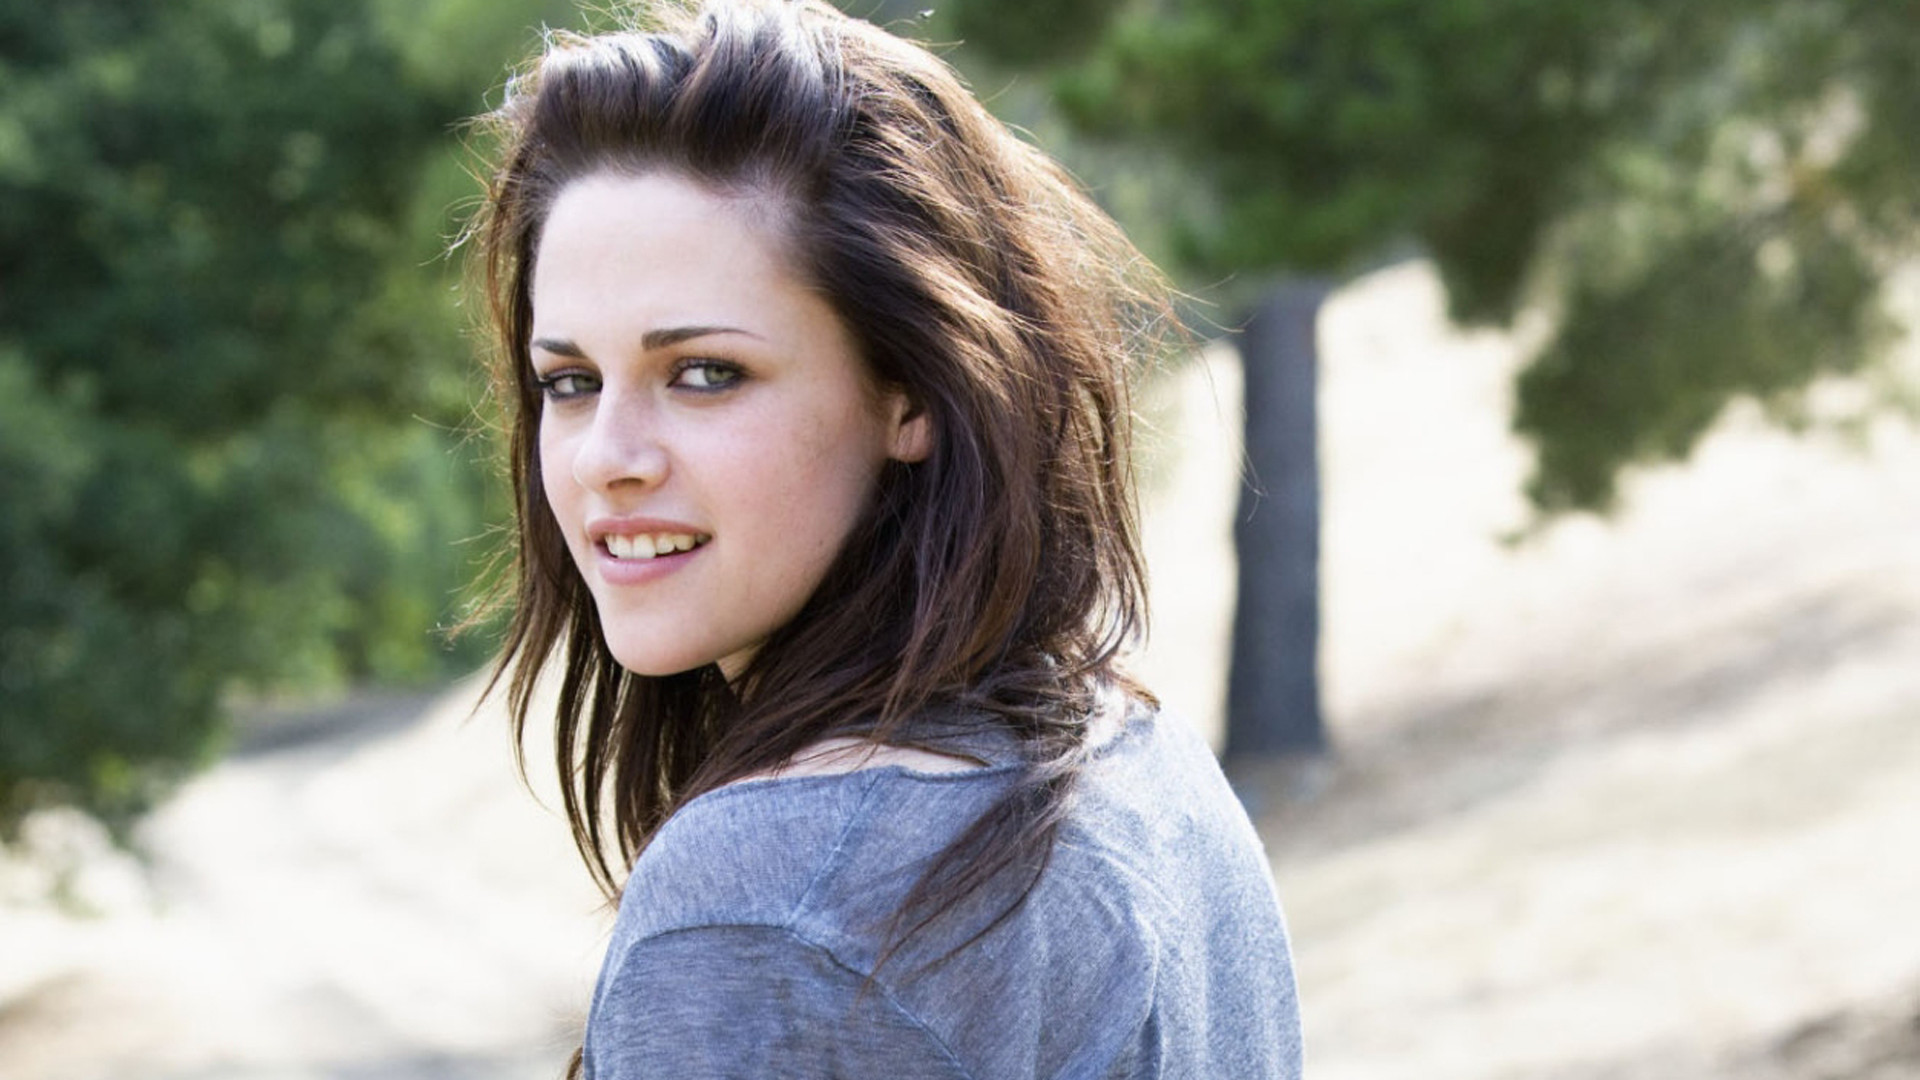 Res: 1920x1080, HD Kristen Stewart Wallpapers 43 HD Kristen Stewart Wallpapers 44